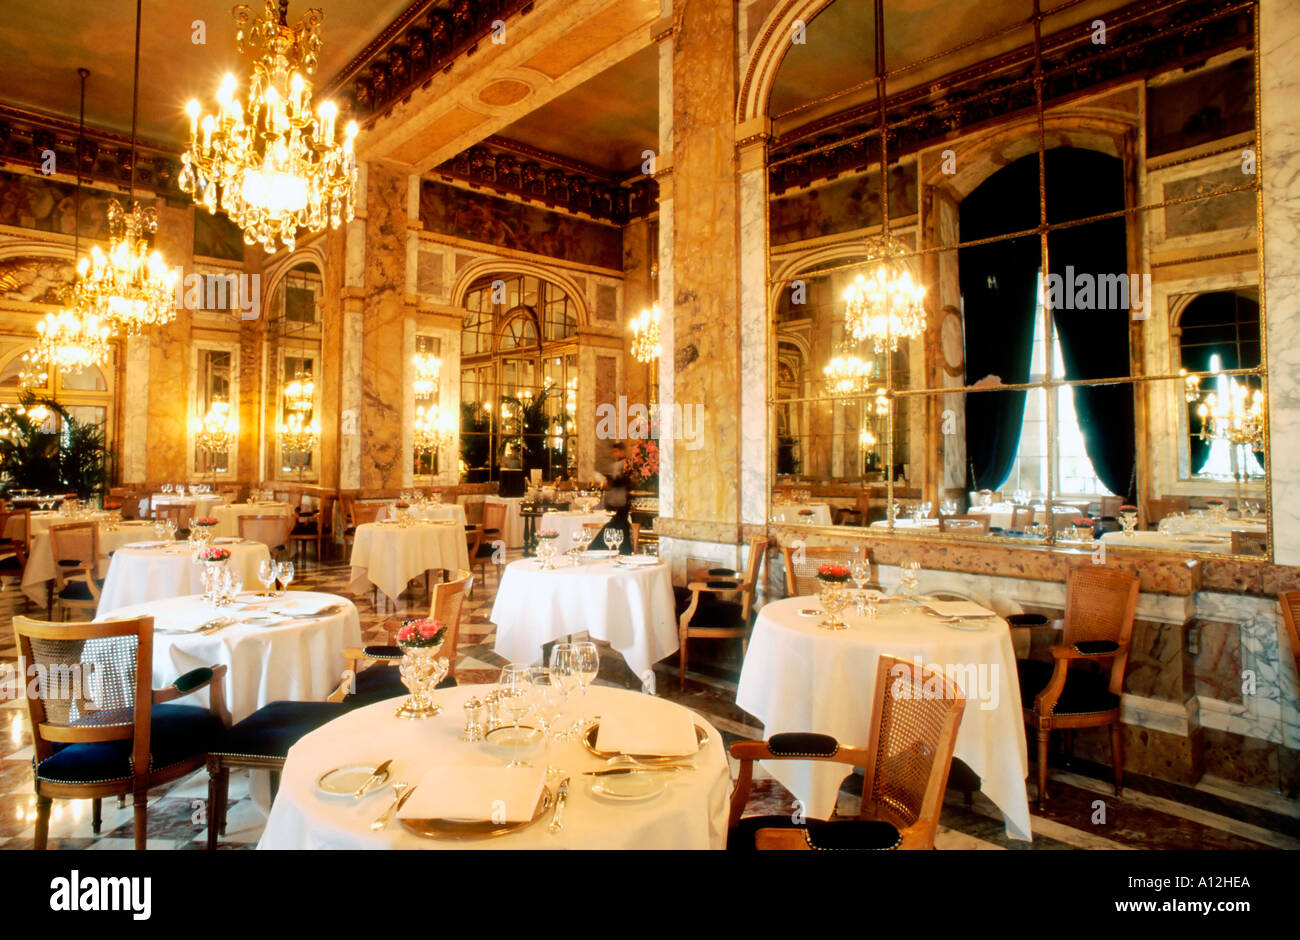 paris france french haute cuisine restaurant dining room ForRestaurant Cuisine Francaise Paris